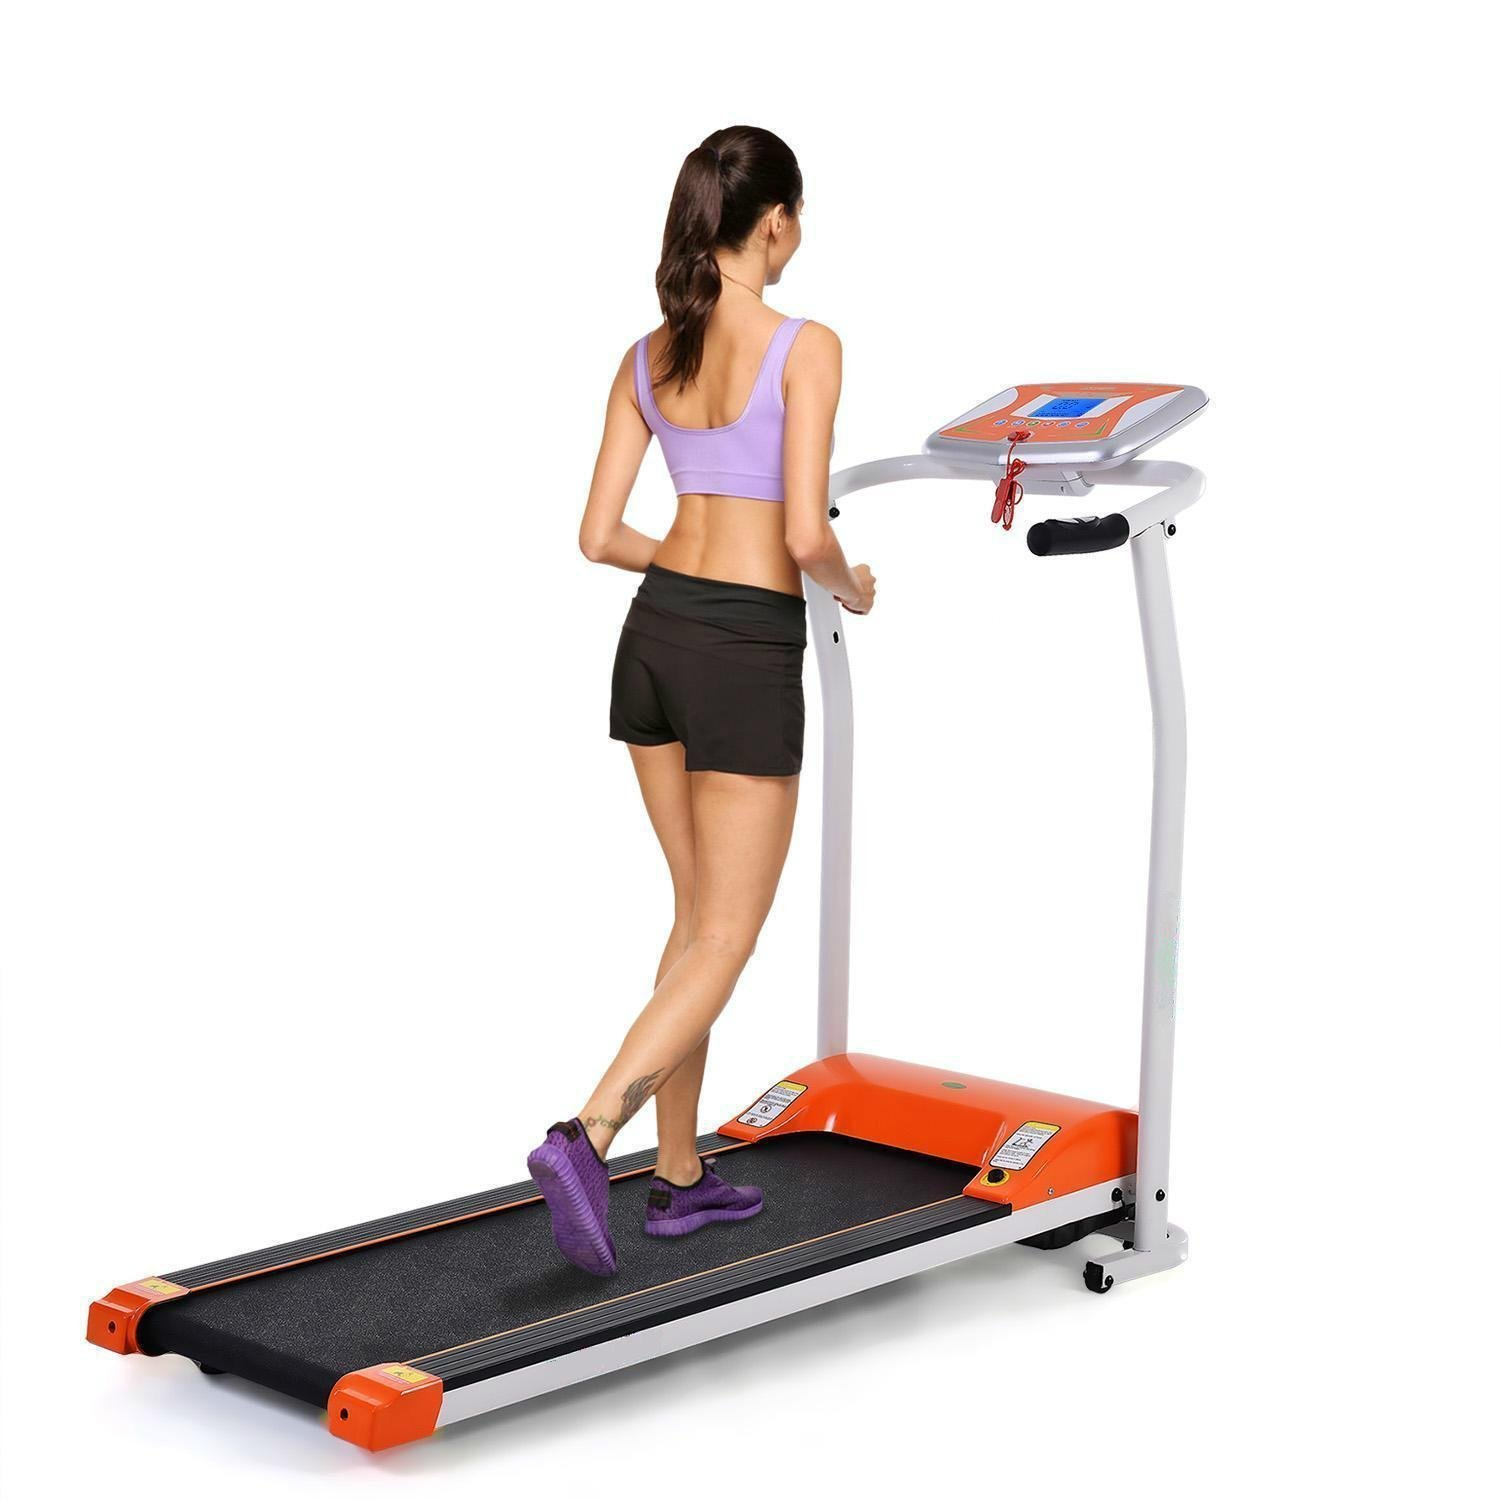 Ferty Economical Foldable Exercise Electrical Treadmill at Home Wide Mini Portable Incline Motorized [US Stock] (Orange)